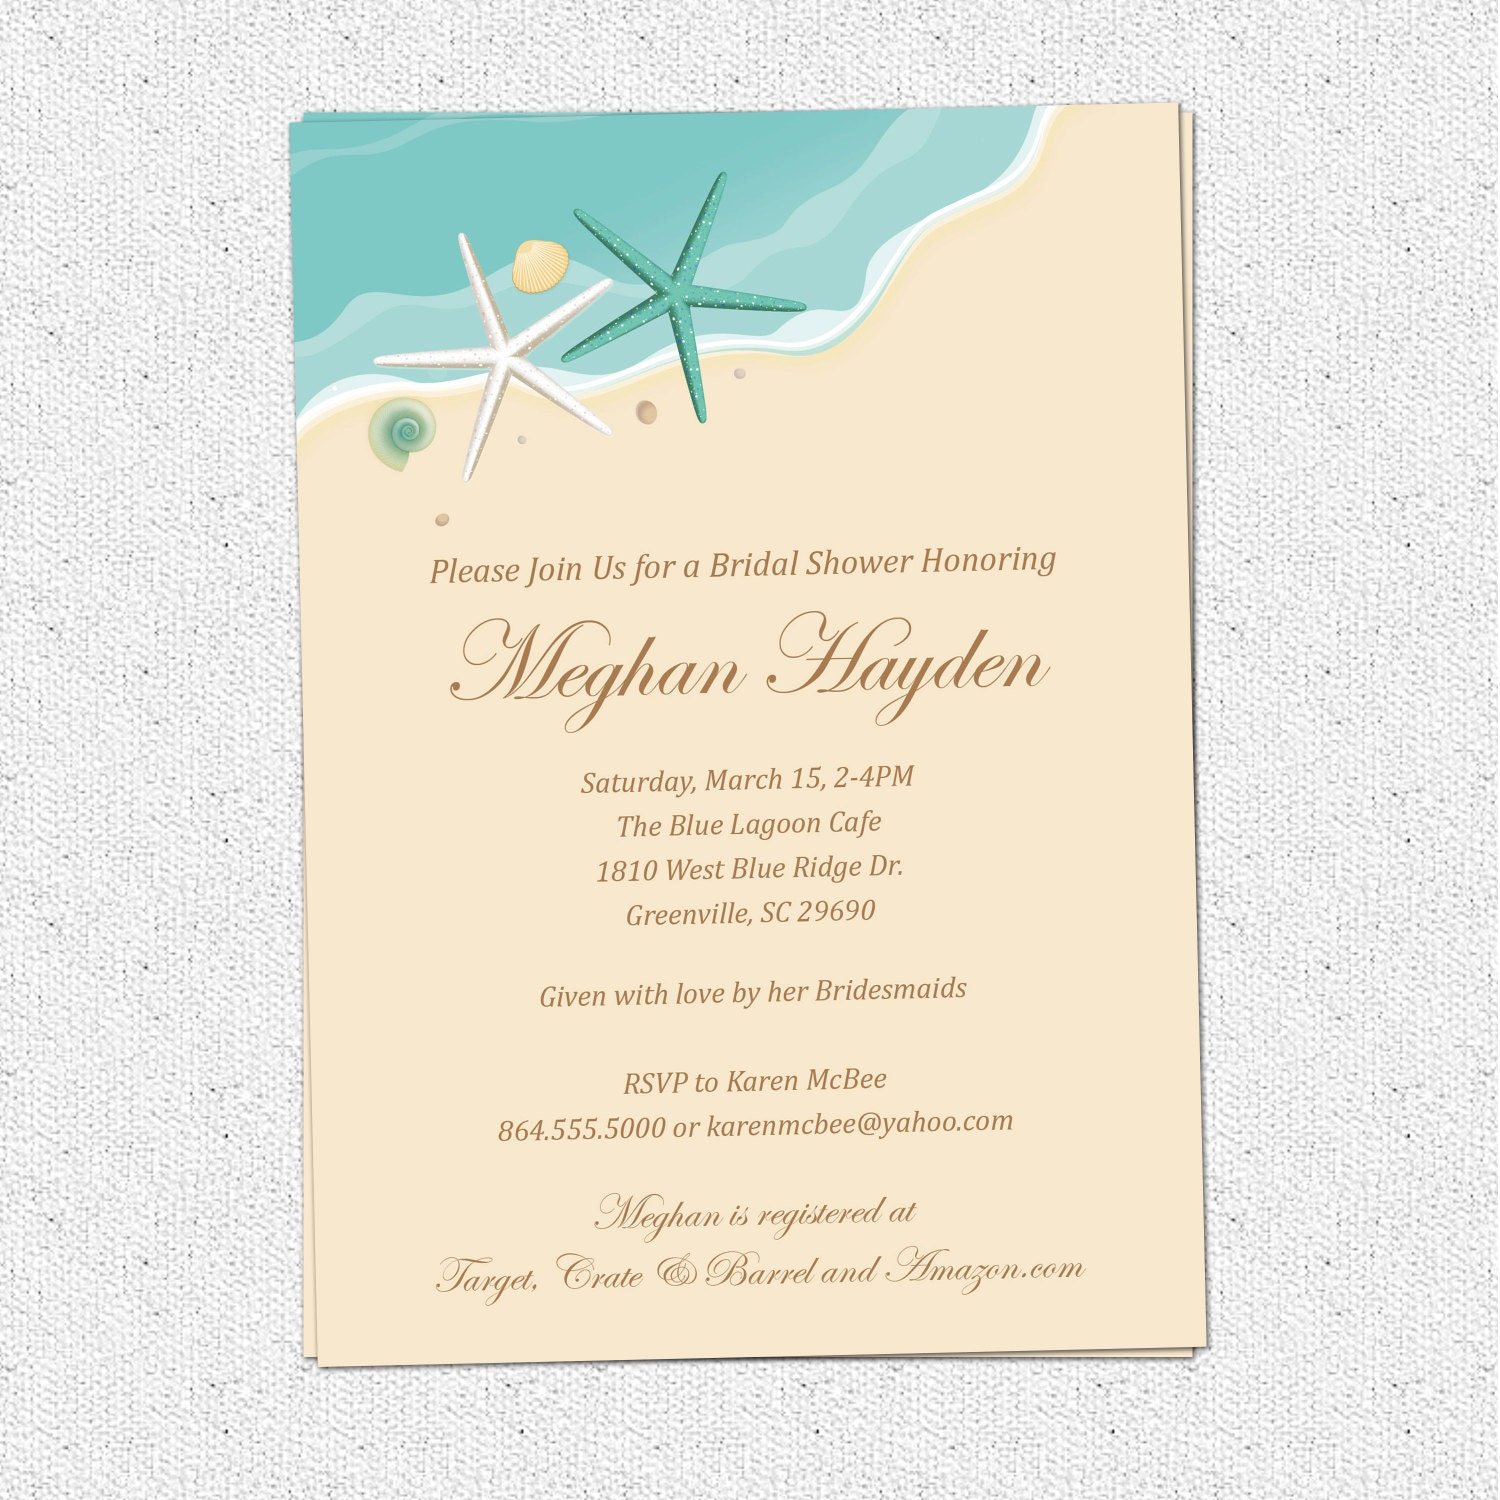 custom invitations online free printable - Goal.goodwinmetals.co